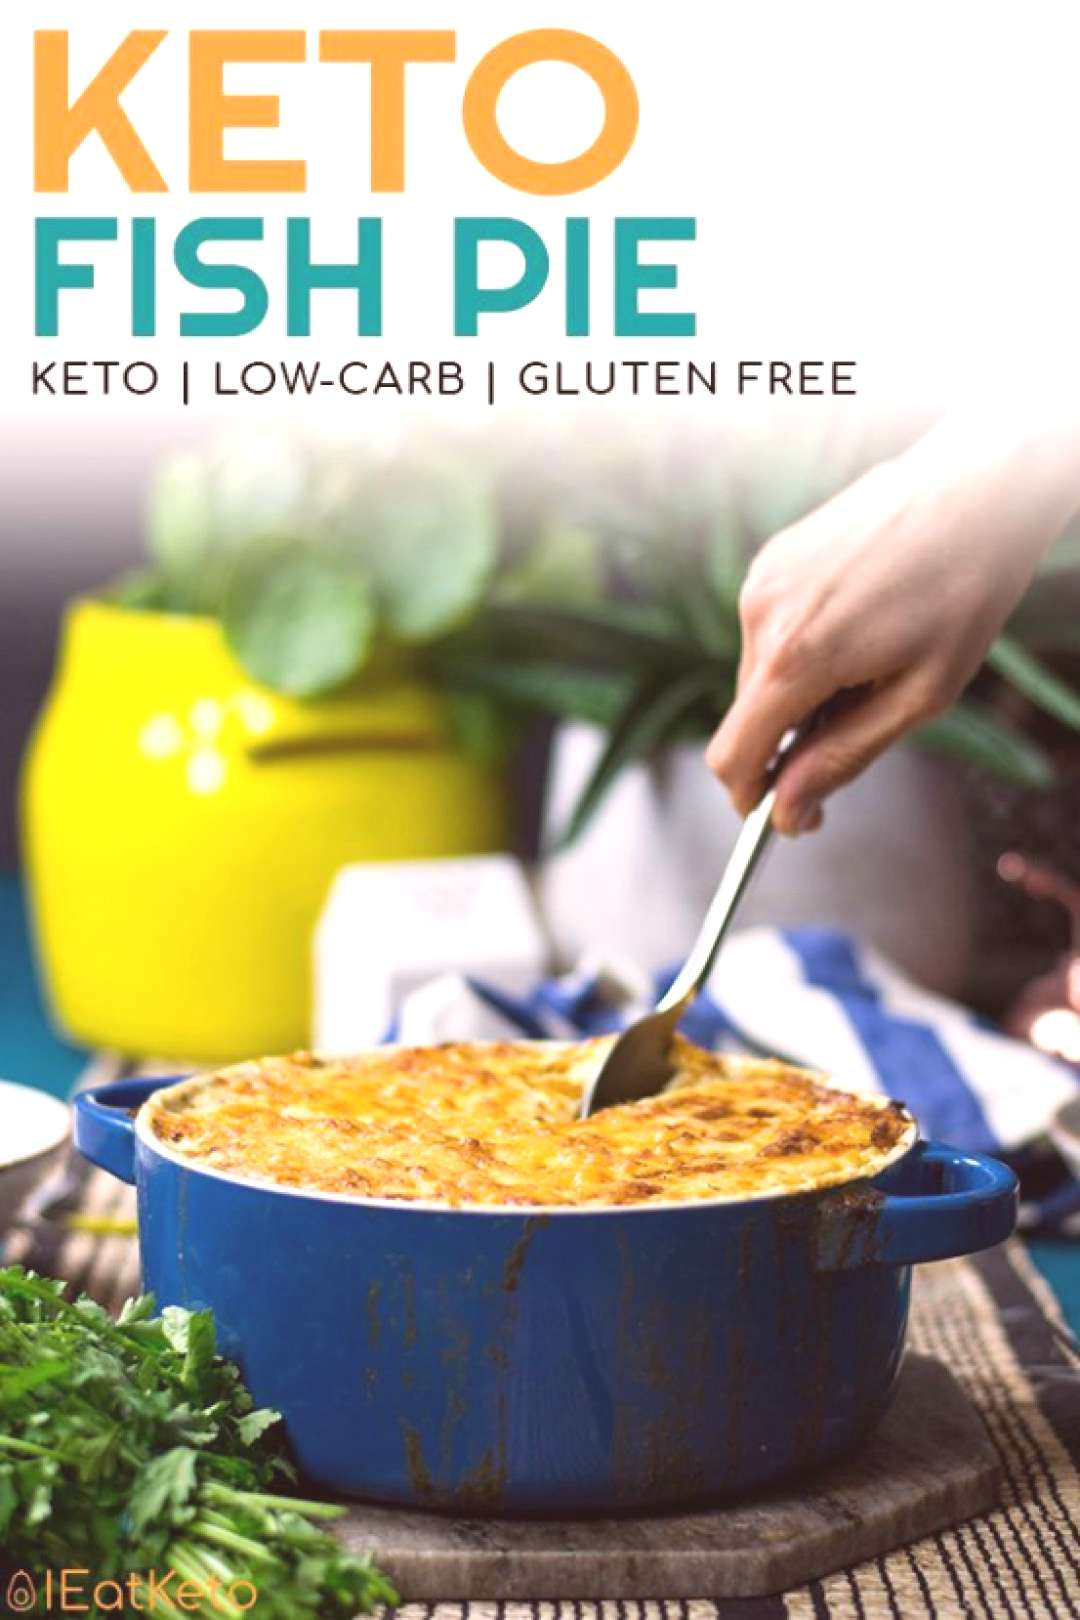 This delicious low carb keto fish pie makes a great keto family dinner on a cold autumn evening.